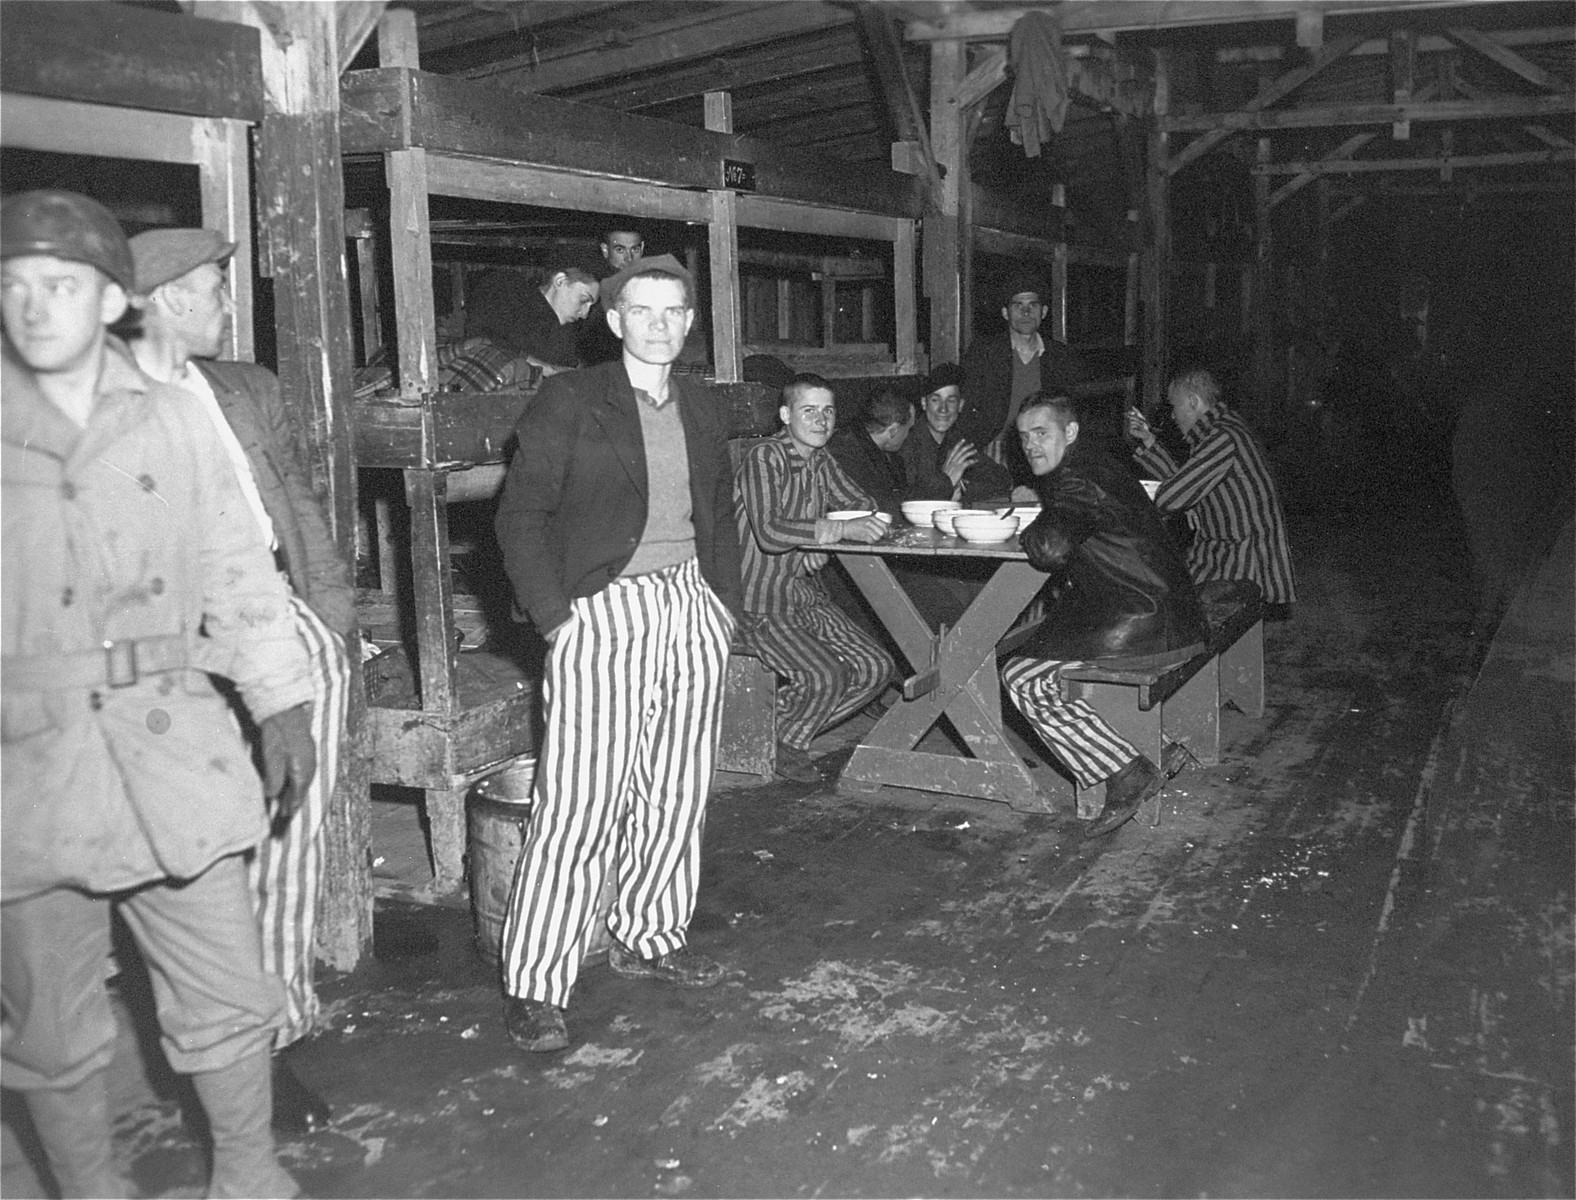 Survivors in a barracks enjoy bowls of soup given to them by the U.S. Army after the liberation of the Buchenwald concentration camp.